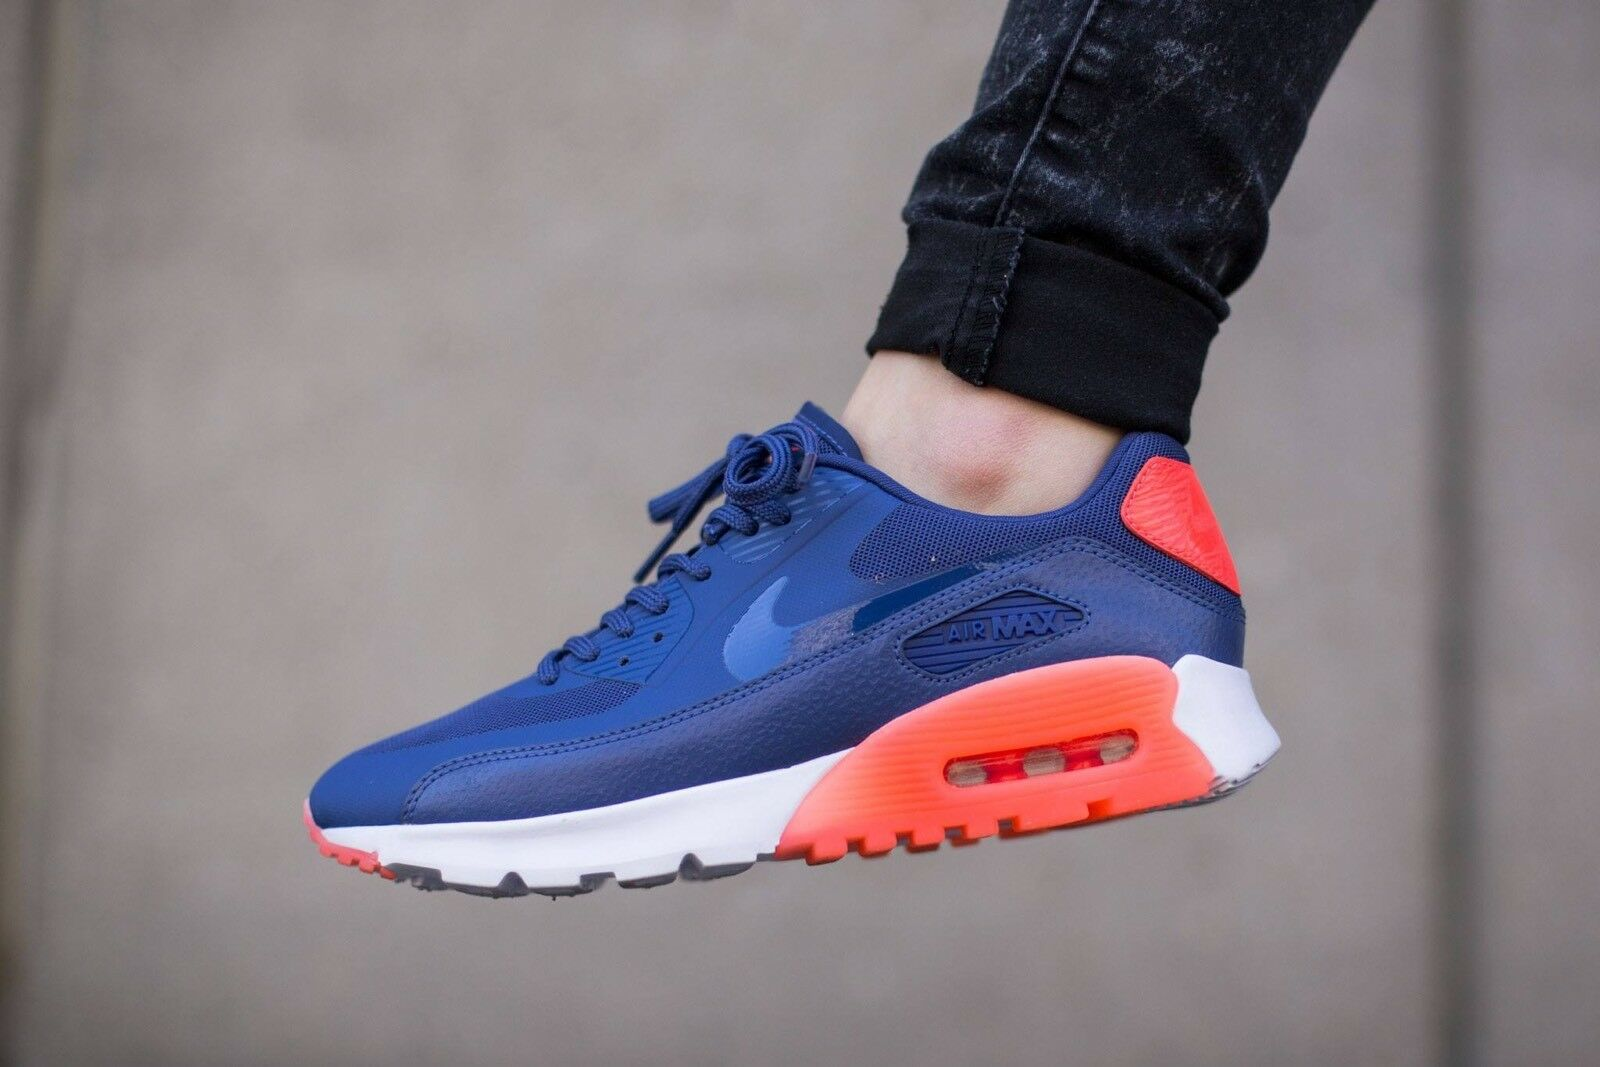 NIKE AIR MAX 90 ULTRA ESSENTIAL WOMEN'S WOMEN'S WOMEN'S RUNNING TRAINNING SHOES 100% AUTHENTIC 20ba68